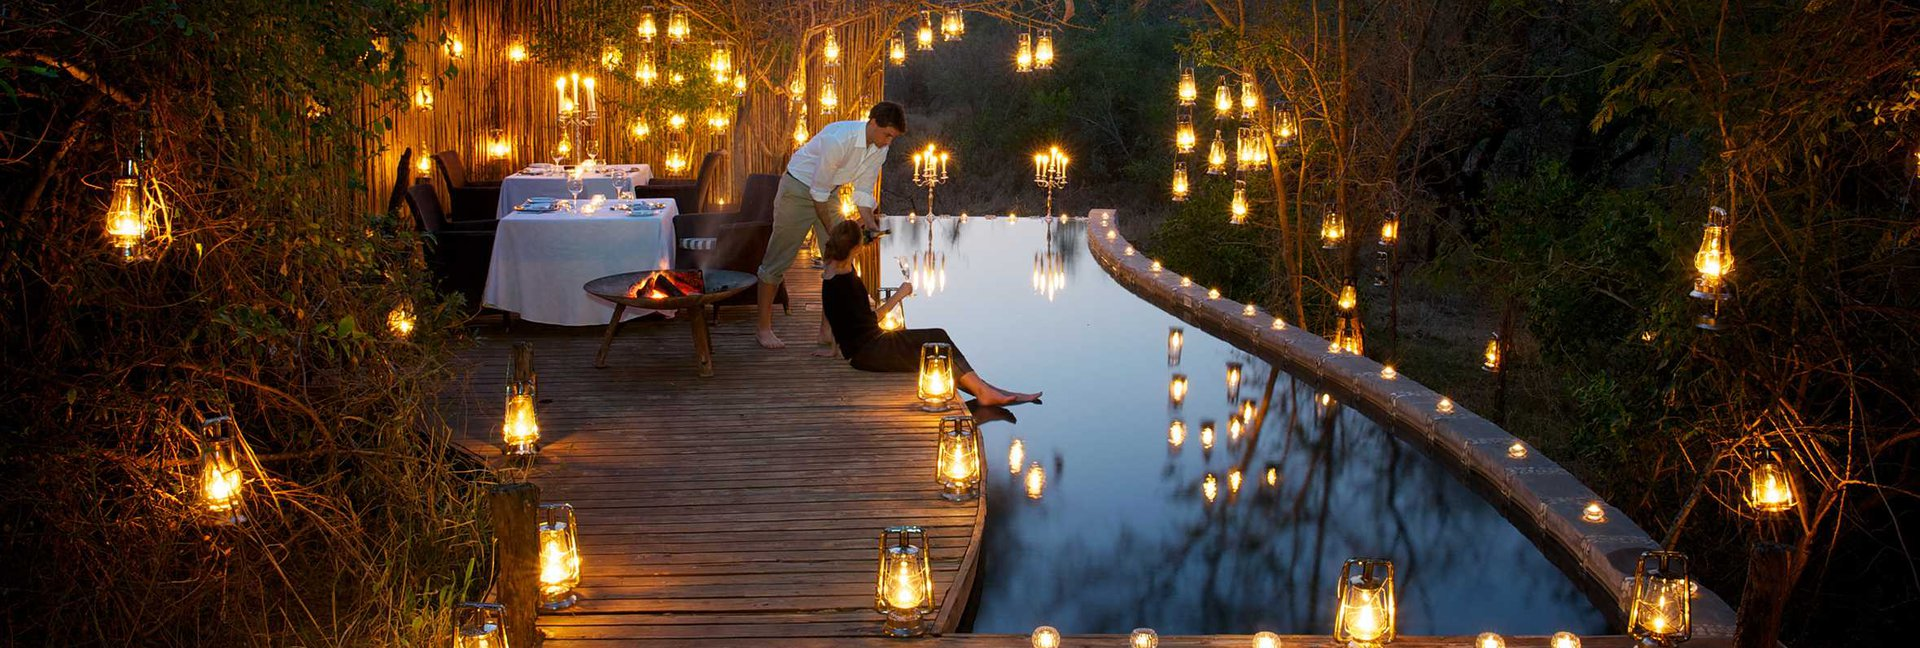 Pioneer camp luxury private suites londolozi game reserve for Academie de cuisine summer camp